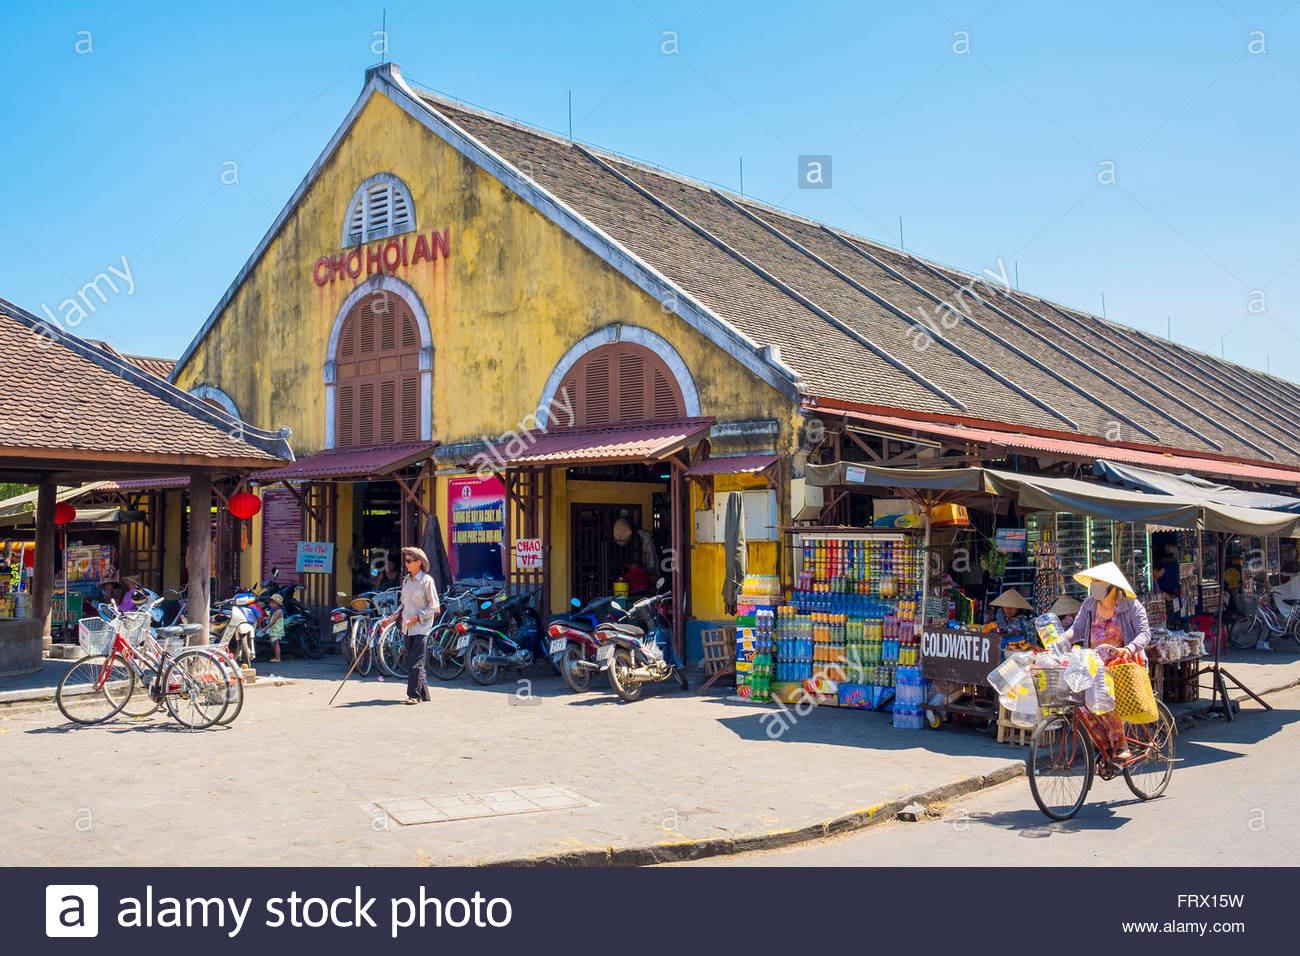 Hoi An central market (Cho Hoi An), Hoi An, Quang Nam Province, Vietnam - Stock Image